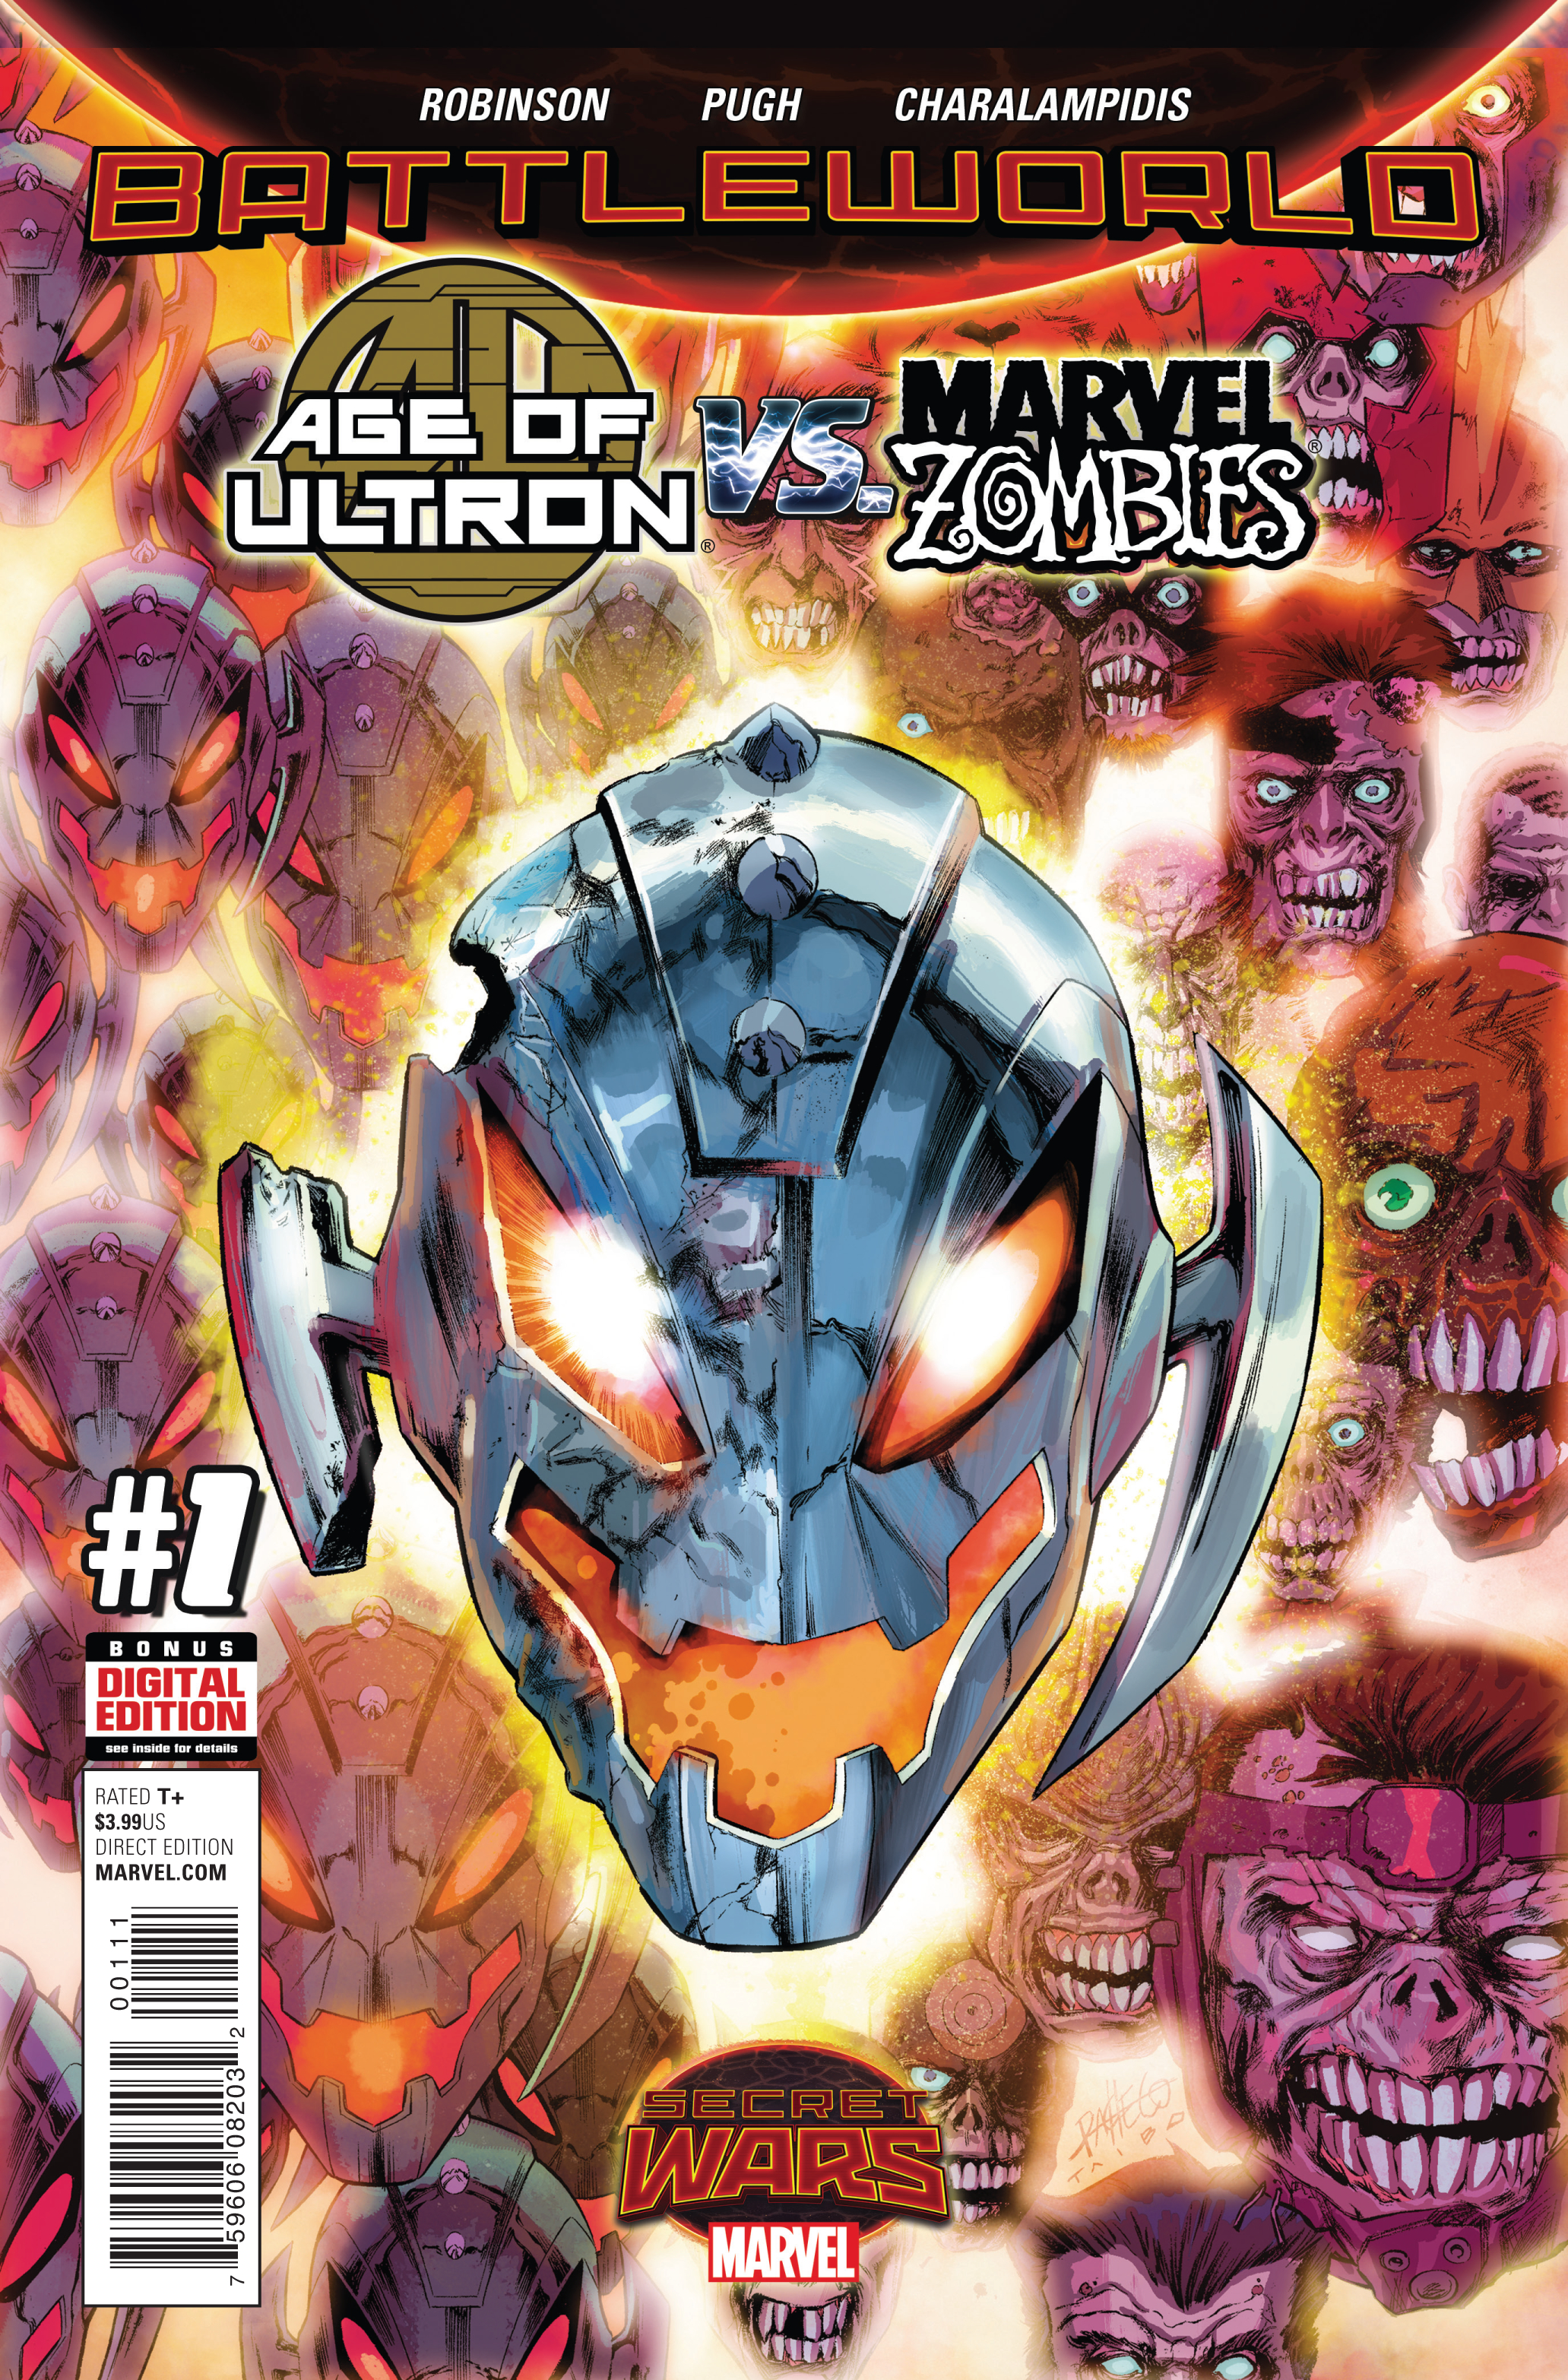 AGE OF ULTRON VS MARVEL ZOMBIES #1 SWA